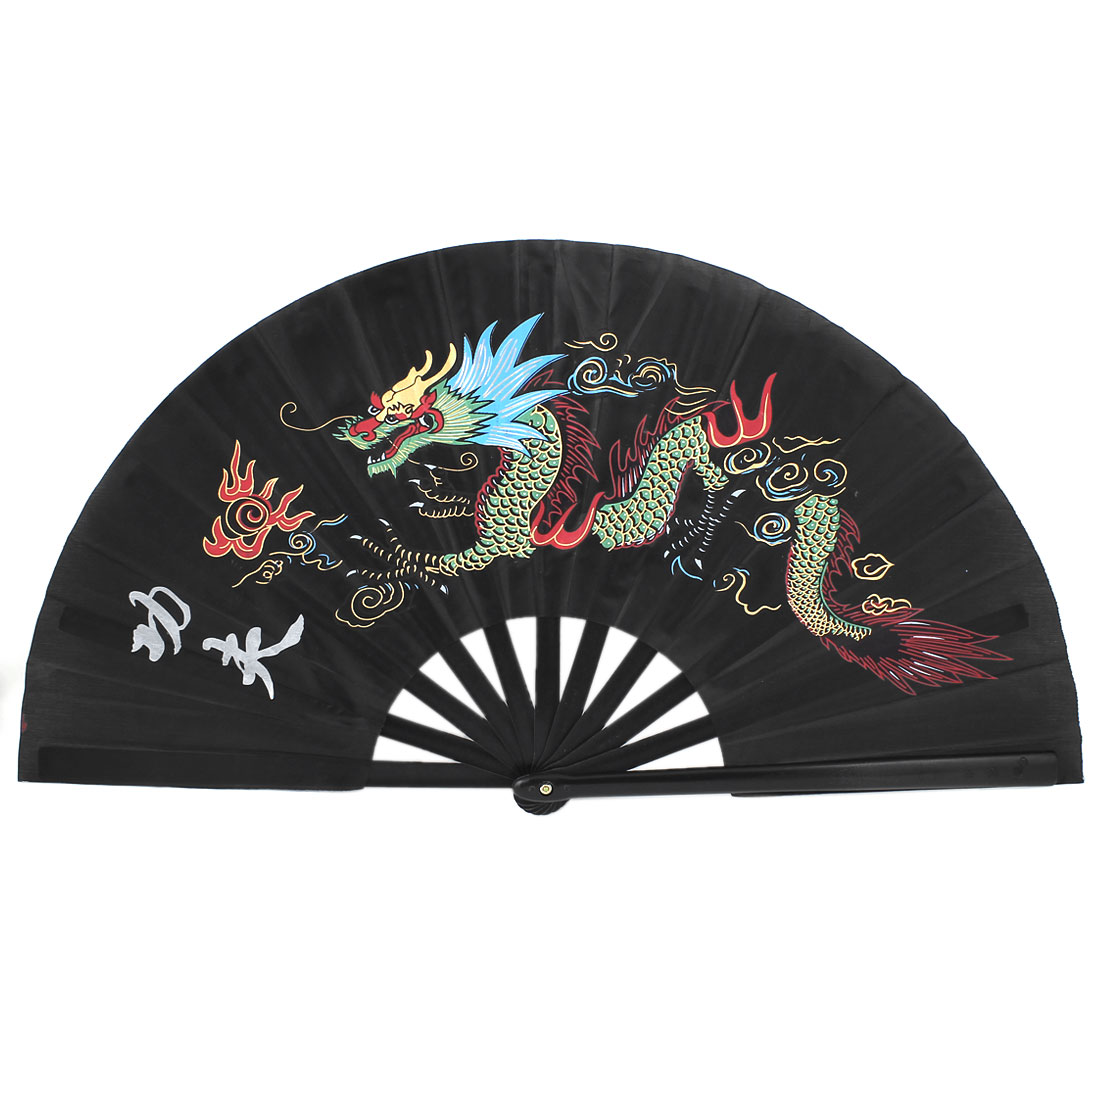 Chinese Kungfu Dragon Print Folding Dancing Exercise Plastic Hand Fan Black